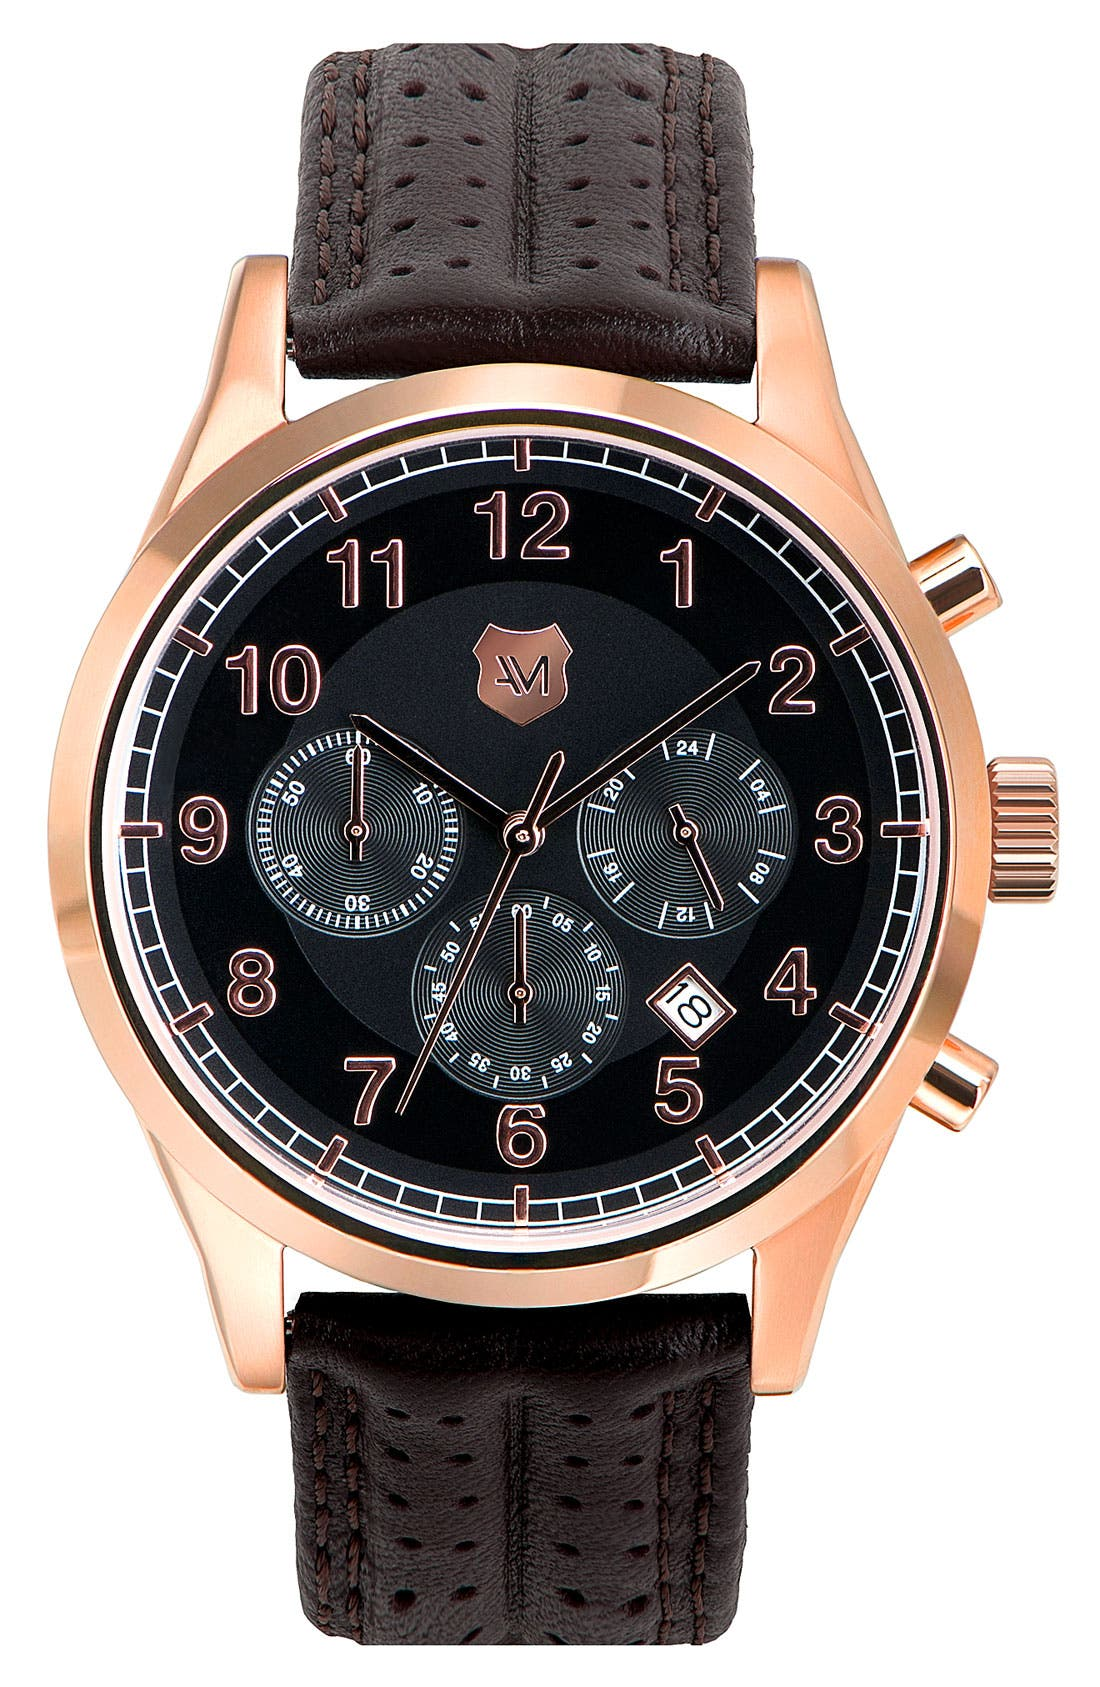 Main Image - Andrew Marc Watches 'Club Blazer' Chronograph Leather Strap Watch